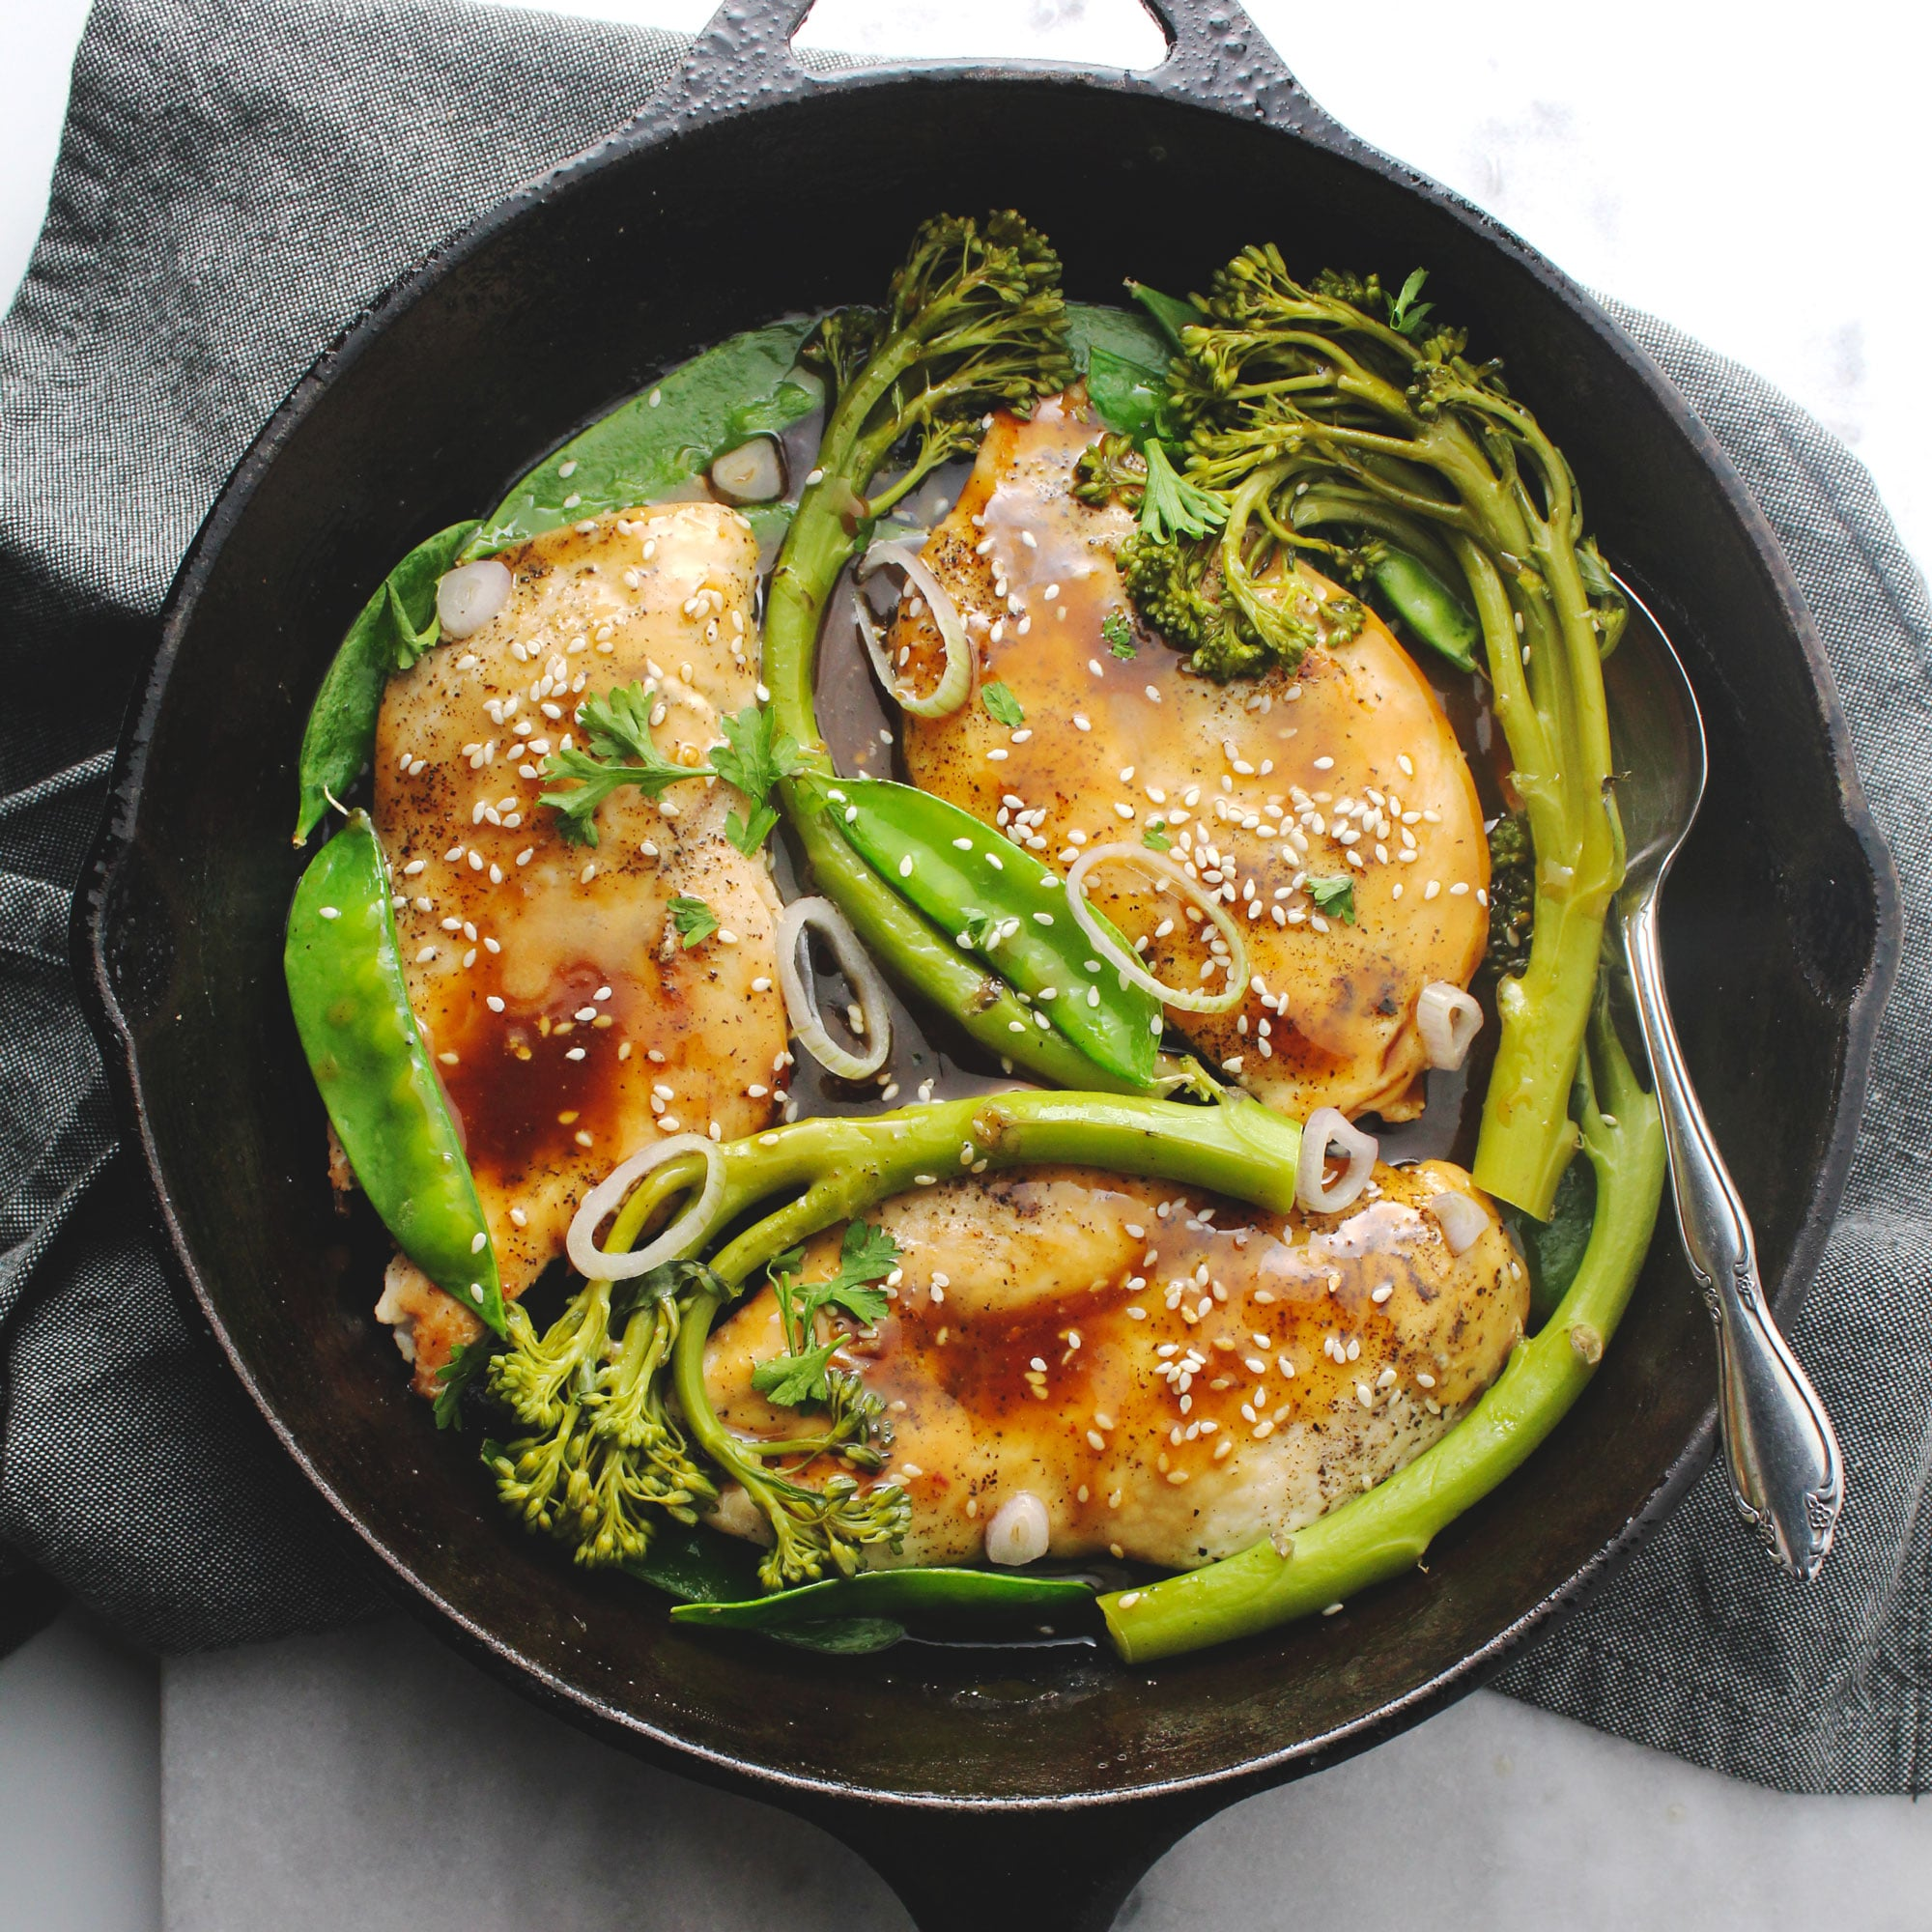 18 Minutes is all it takes to make this delicious sesame honey glazed chicken paired with snap peas and broccolini for a complete meal with a magical sauce | via @AimeeMarsLiving | #Sesame #Chicken #Quick